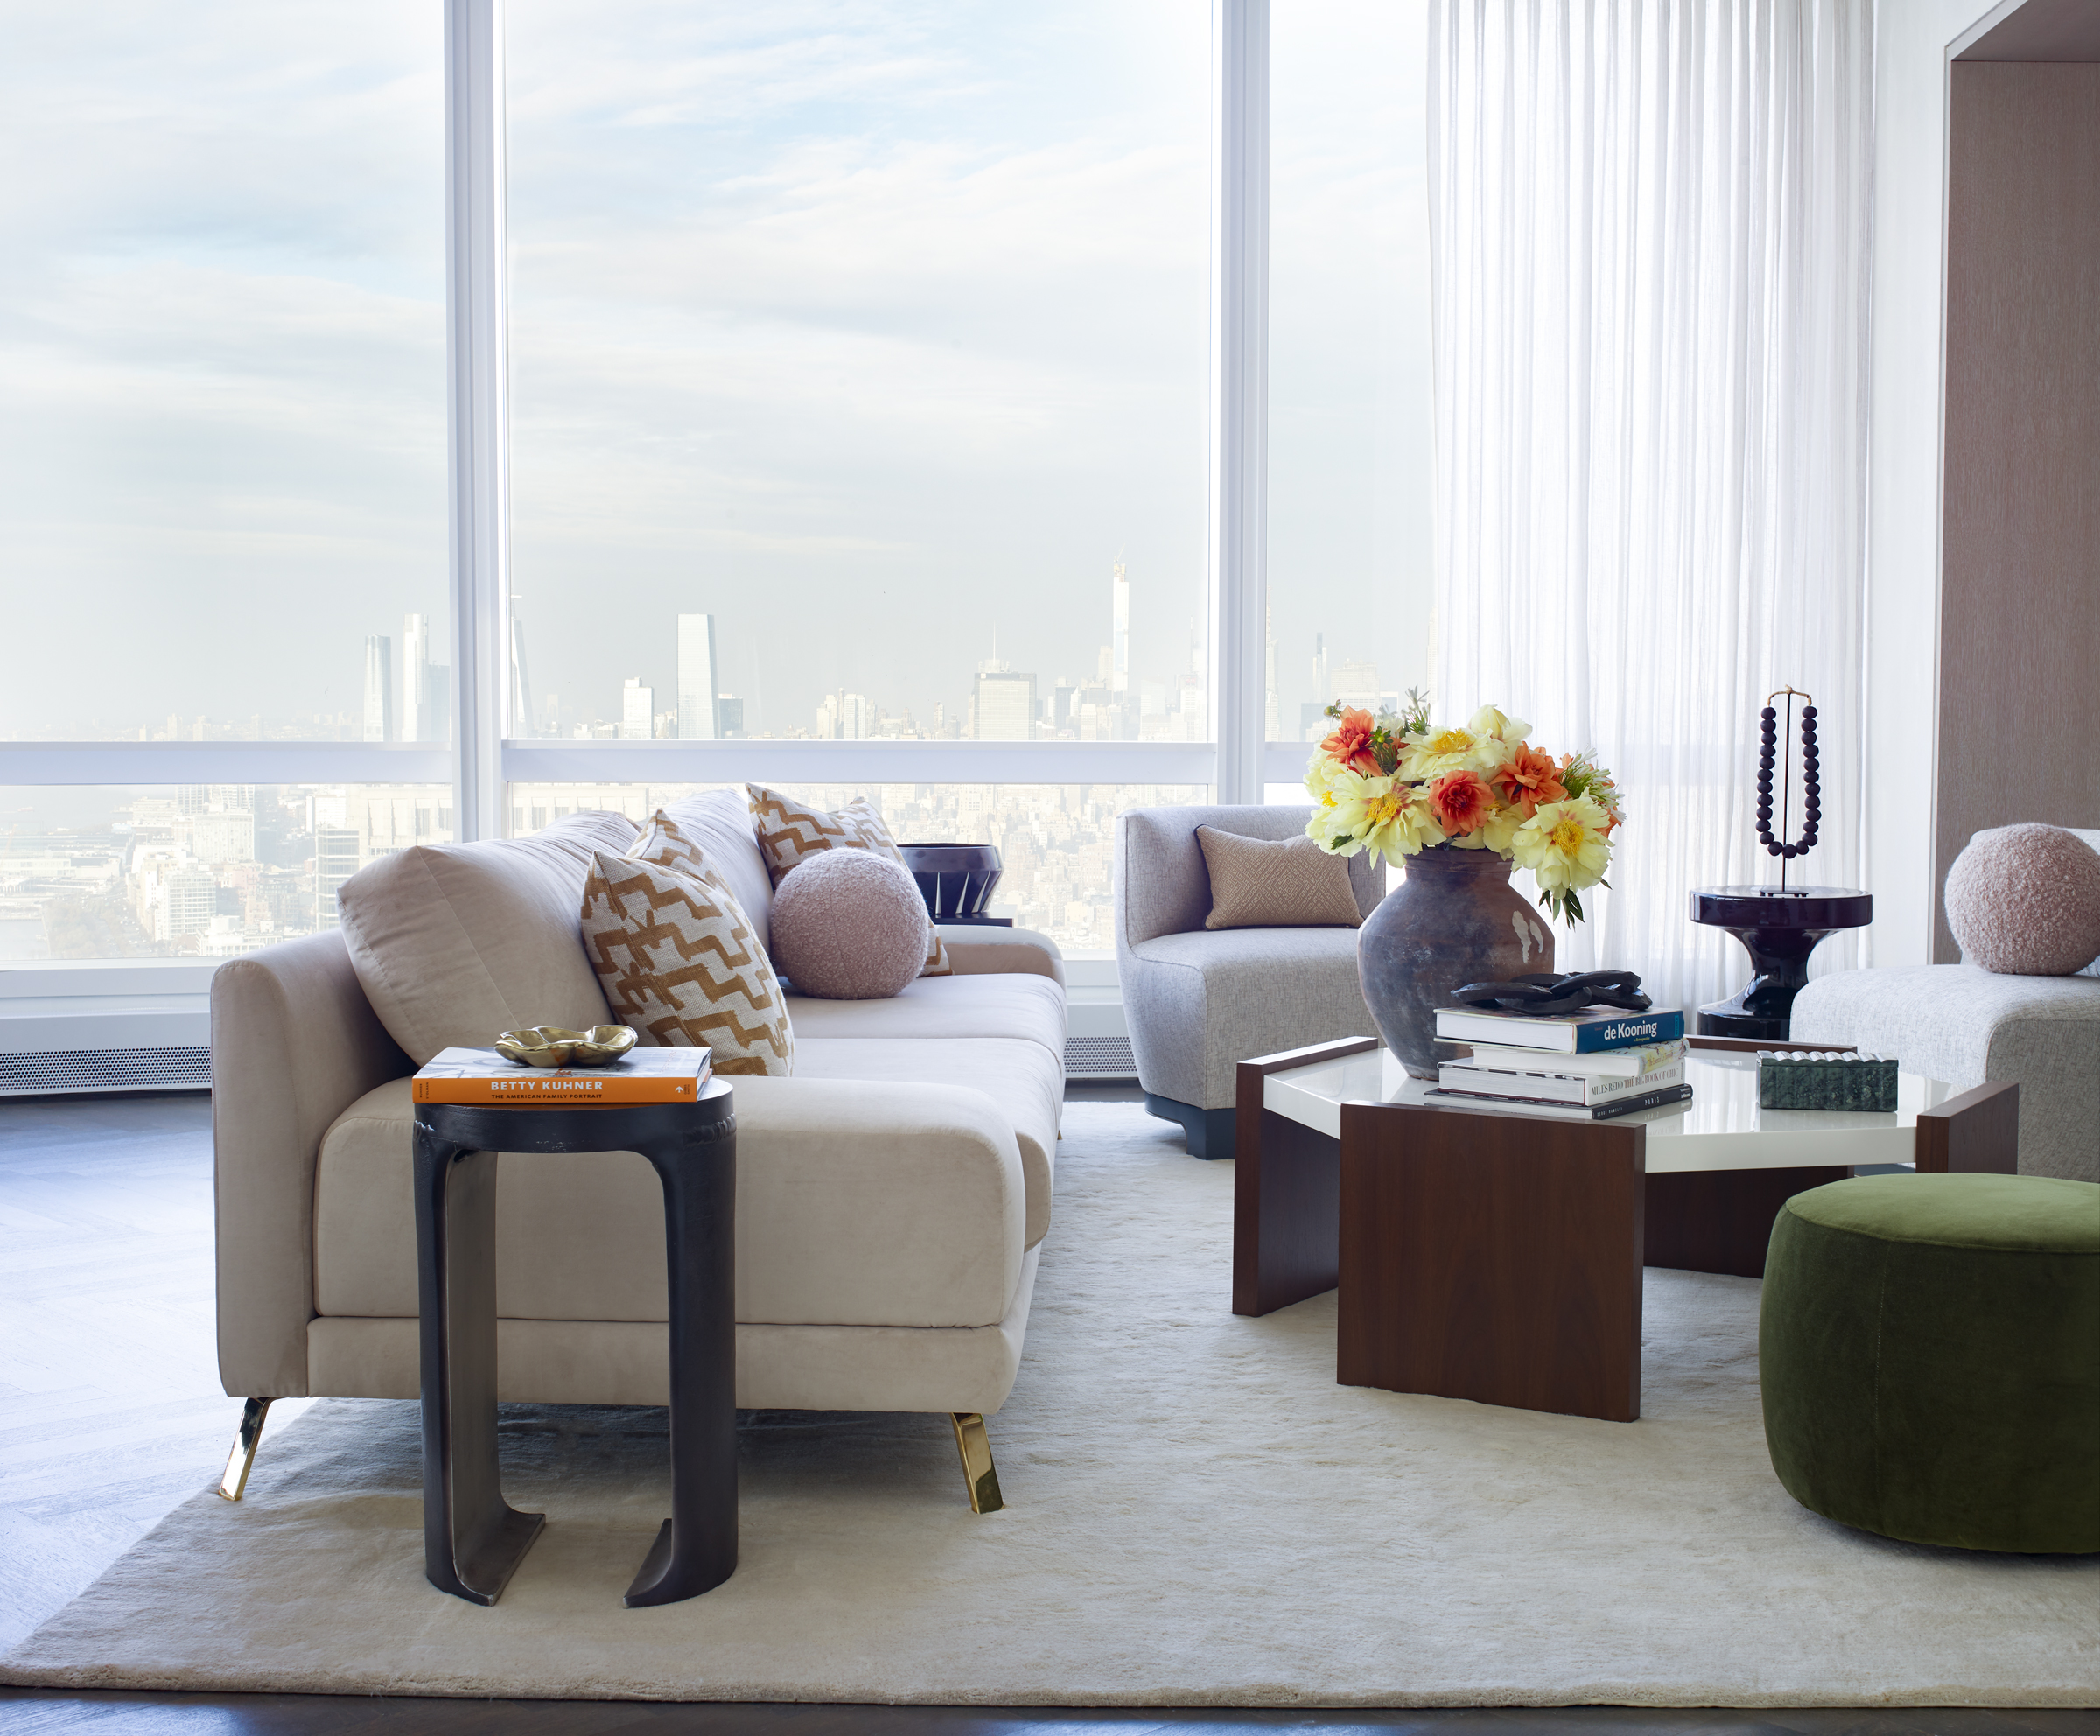 Living room of 111 Murray Street with a city view through the enormous window